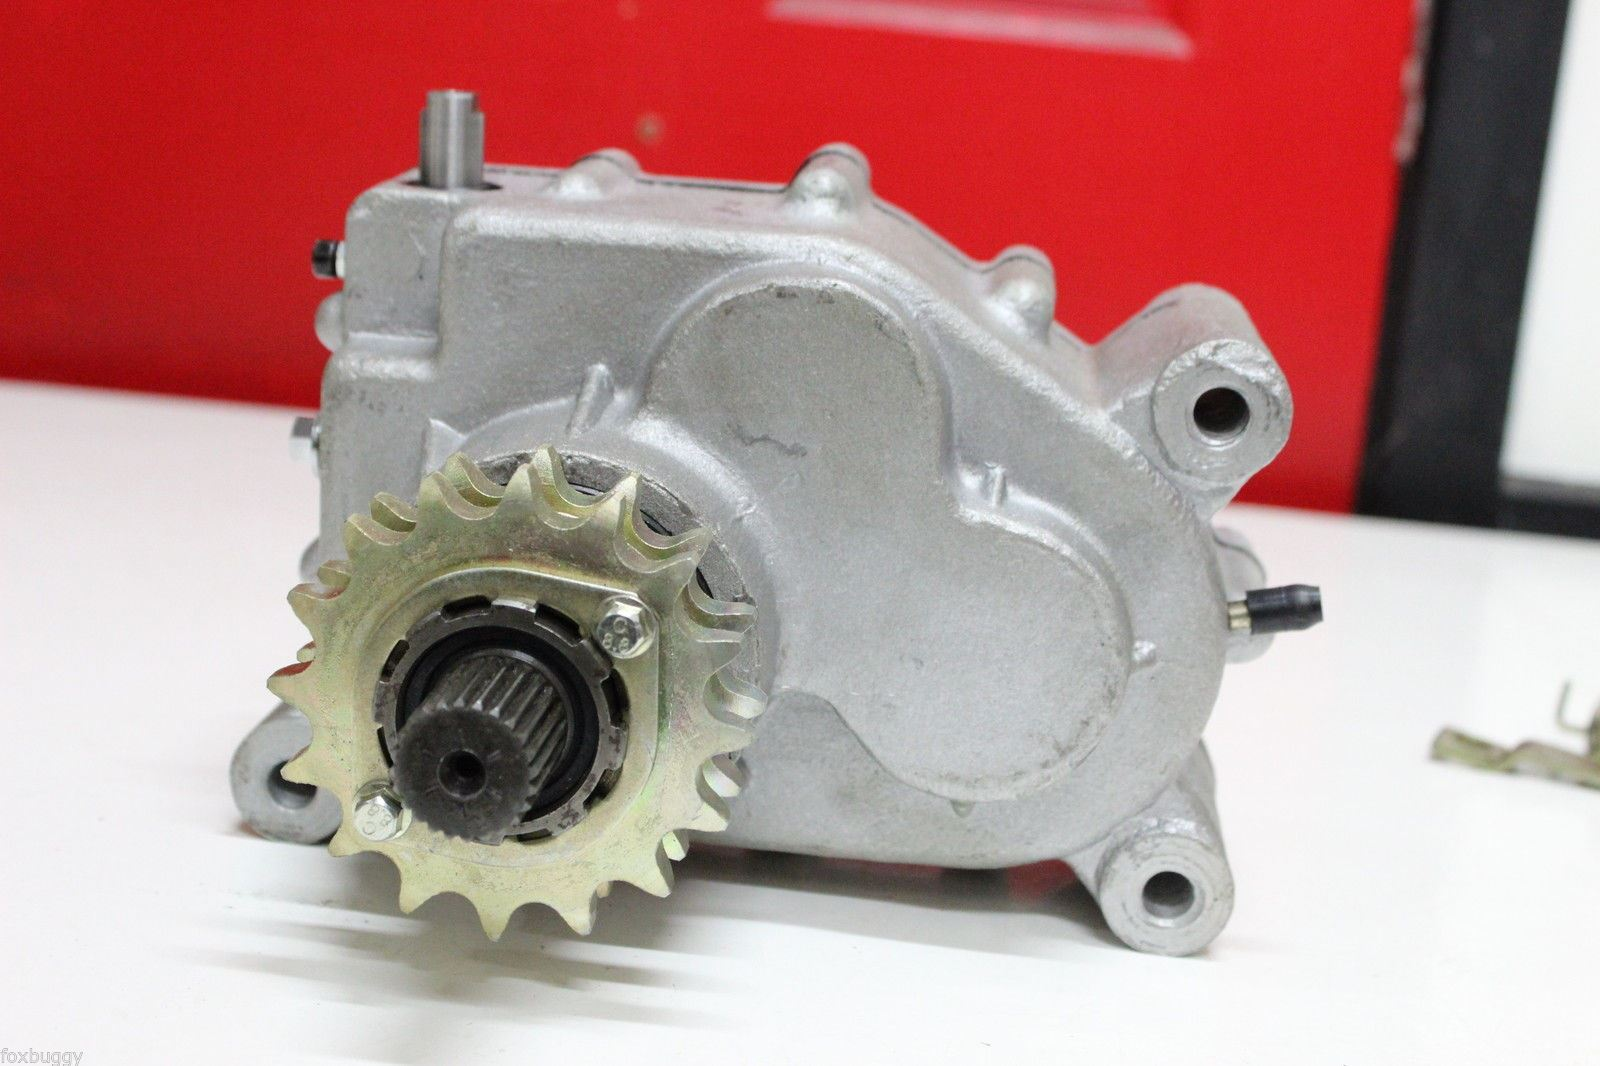 Details about 250CC REVERSE GEARBOX KINROAD SAHARA GY6 BUGGY FOR 19 AND 24  SPLINES CF250 MOTOR